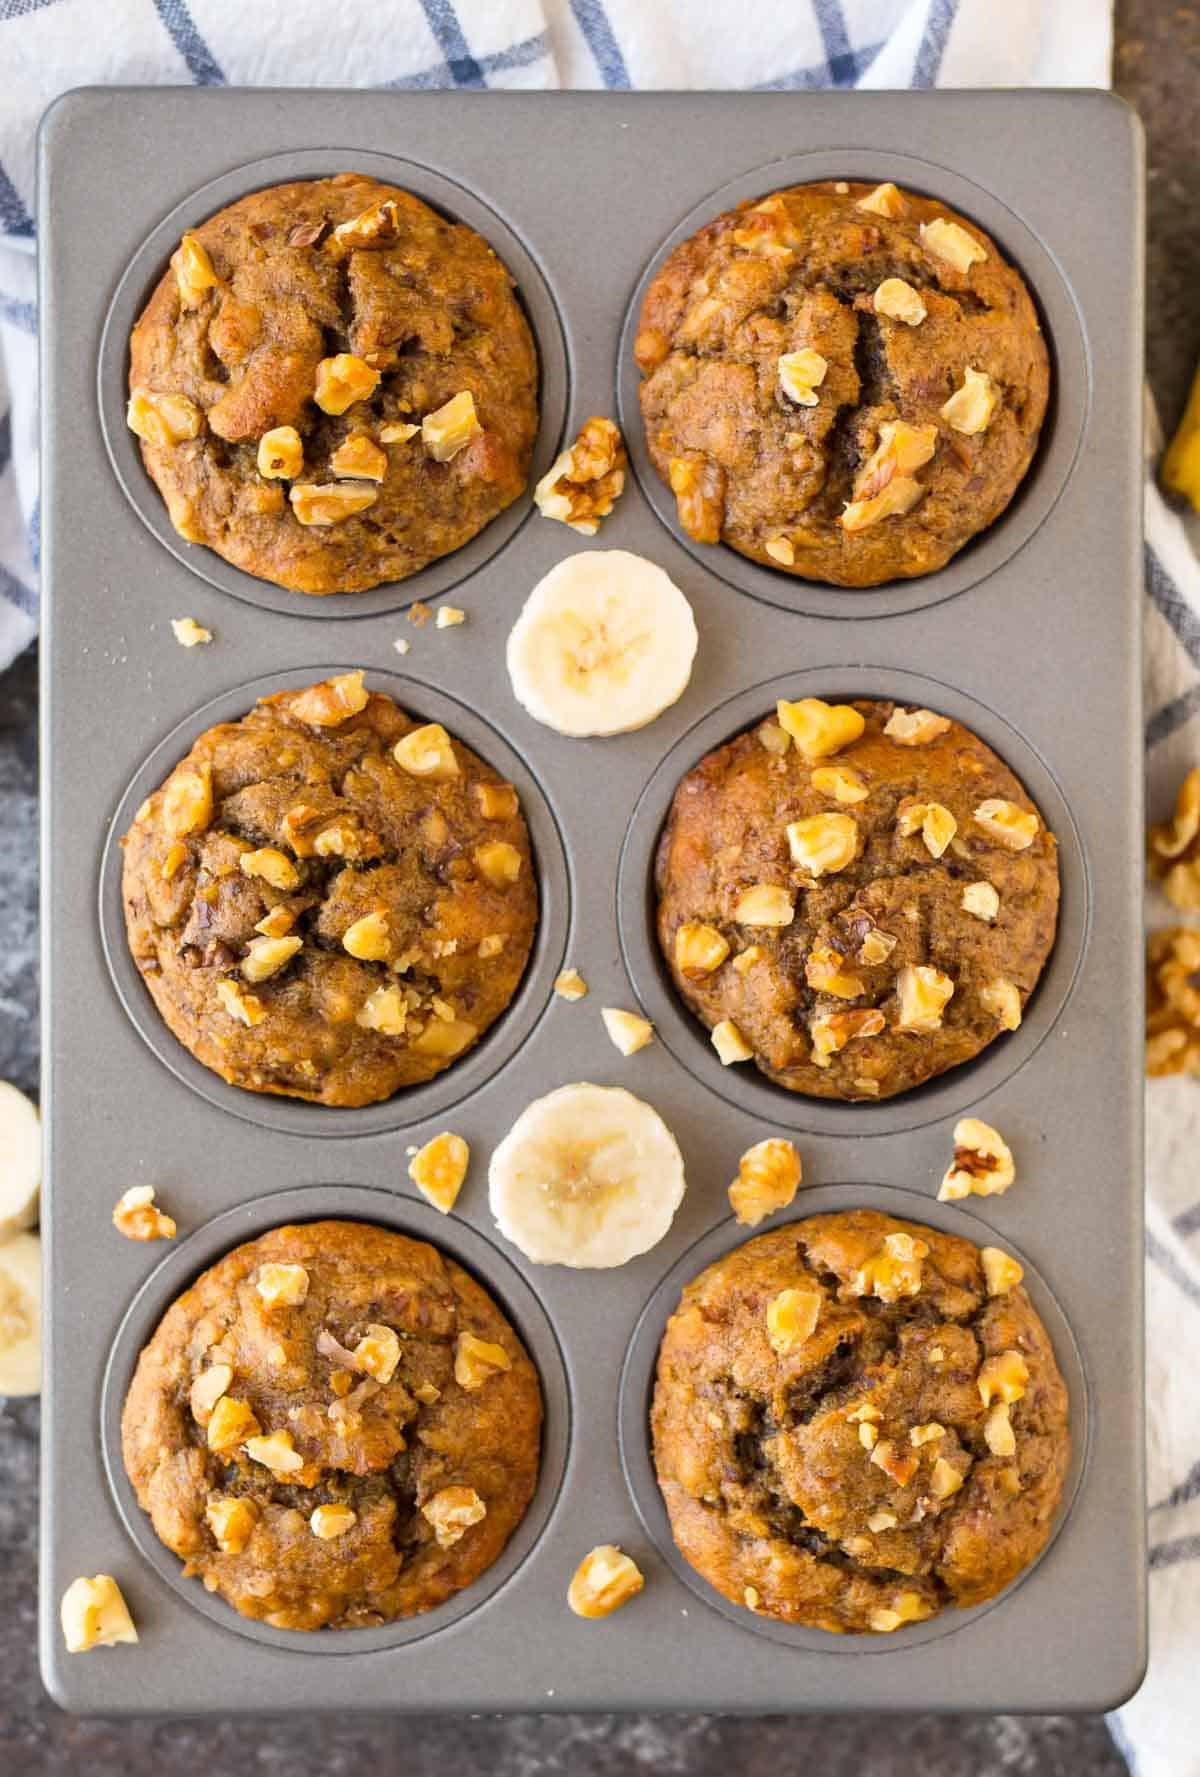 Healthy banana muffins in a muffin pan